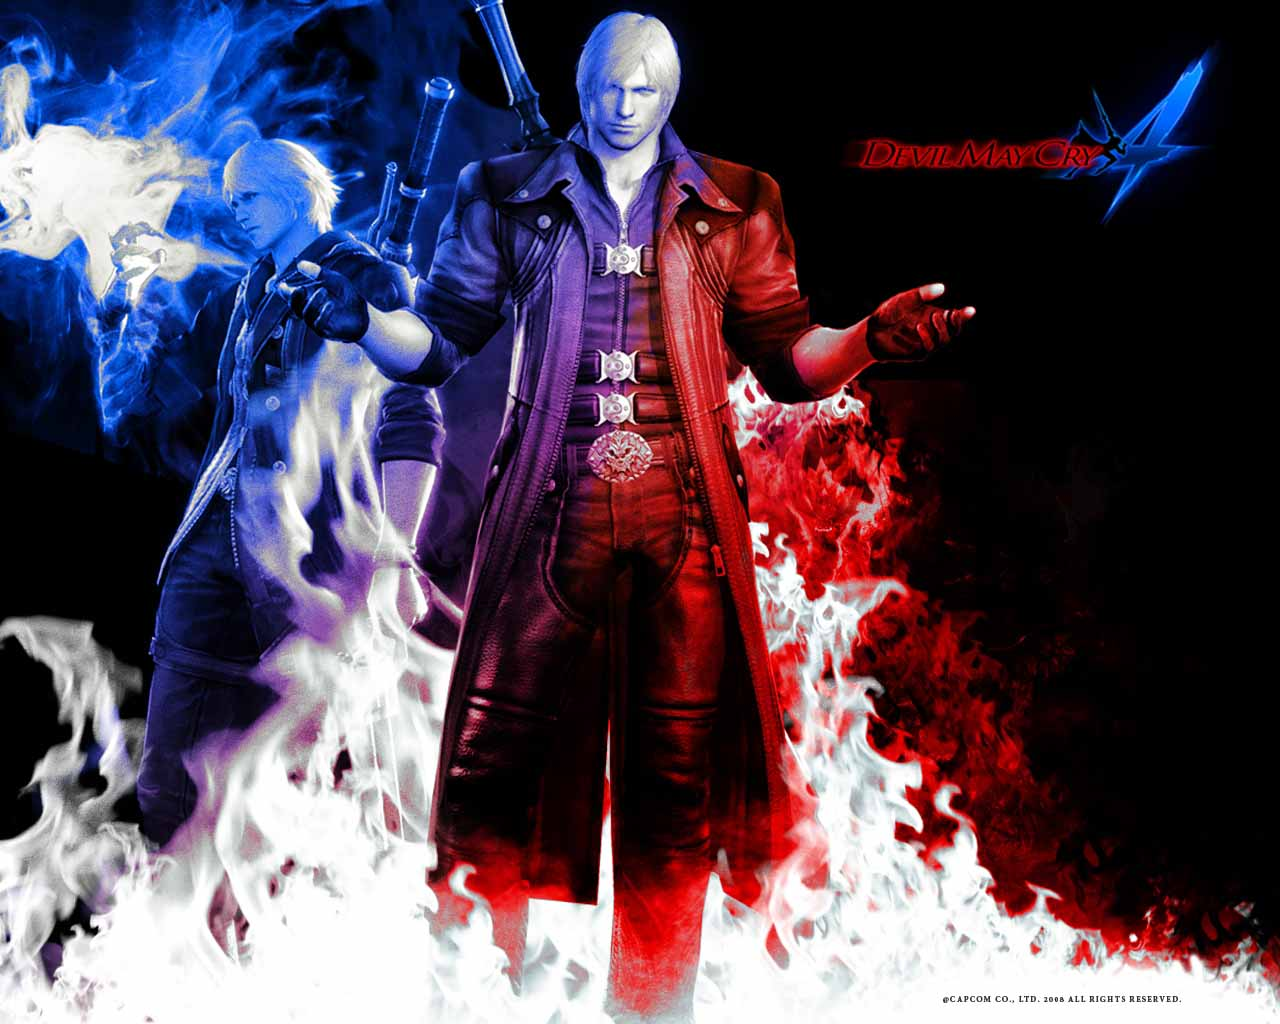 Devil may cry hd wallpapers wallpaper cave - Devil may cry hd pics ...